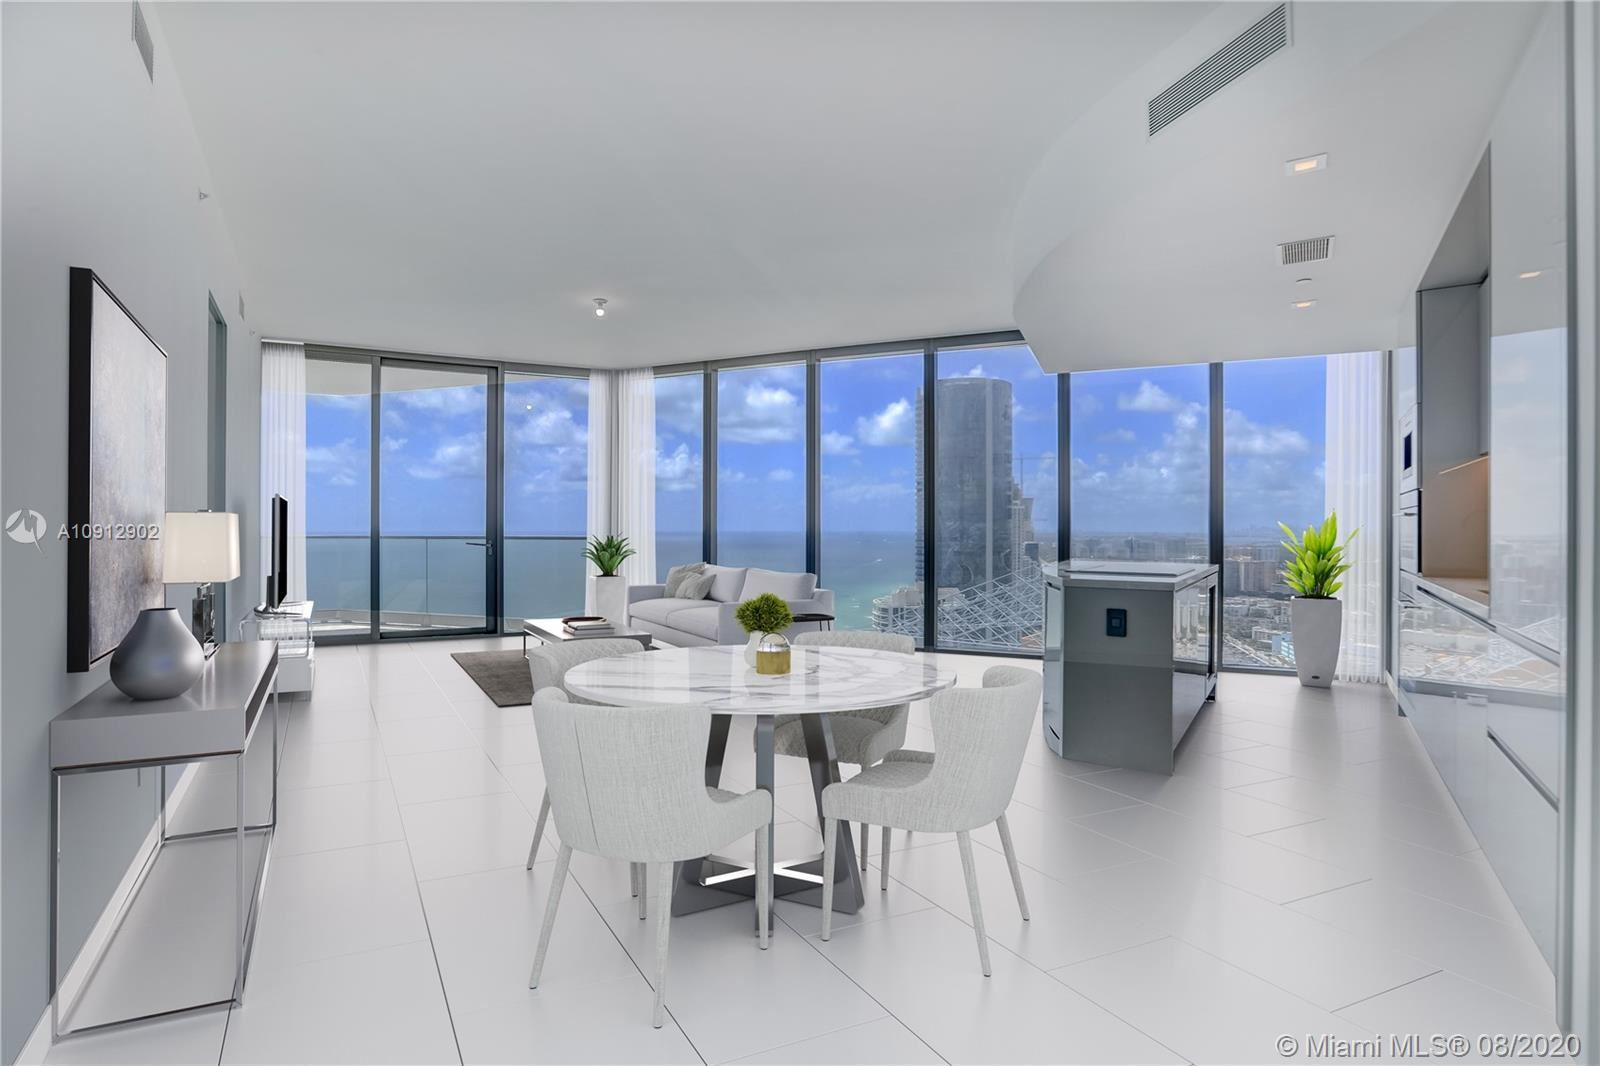 18975 Collins Ave #3704, Sunny Isles, FL 33160 - #: A10912902